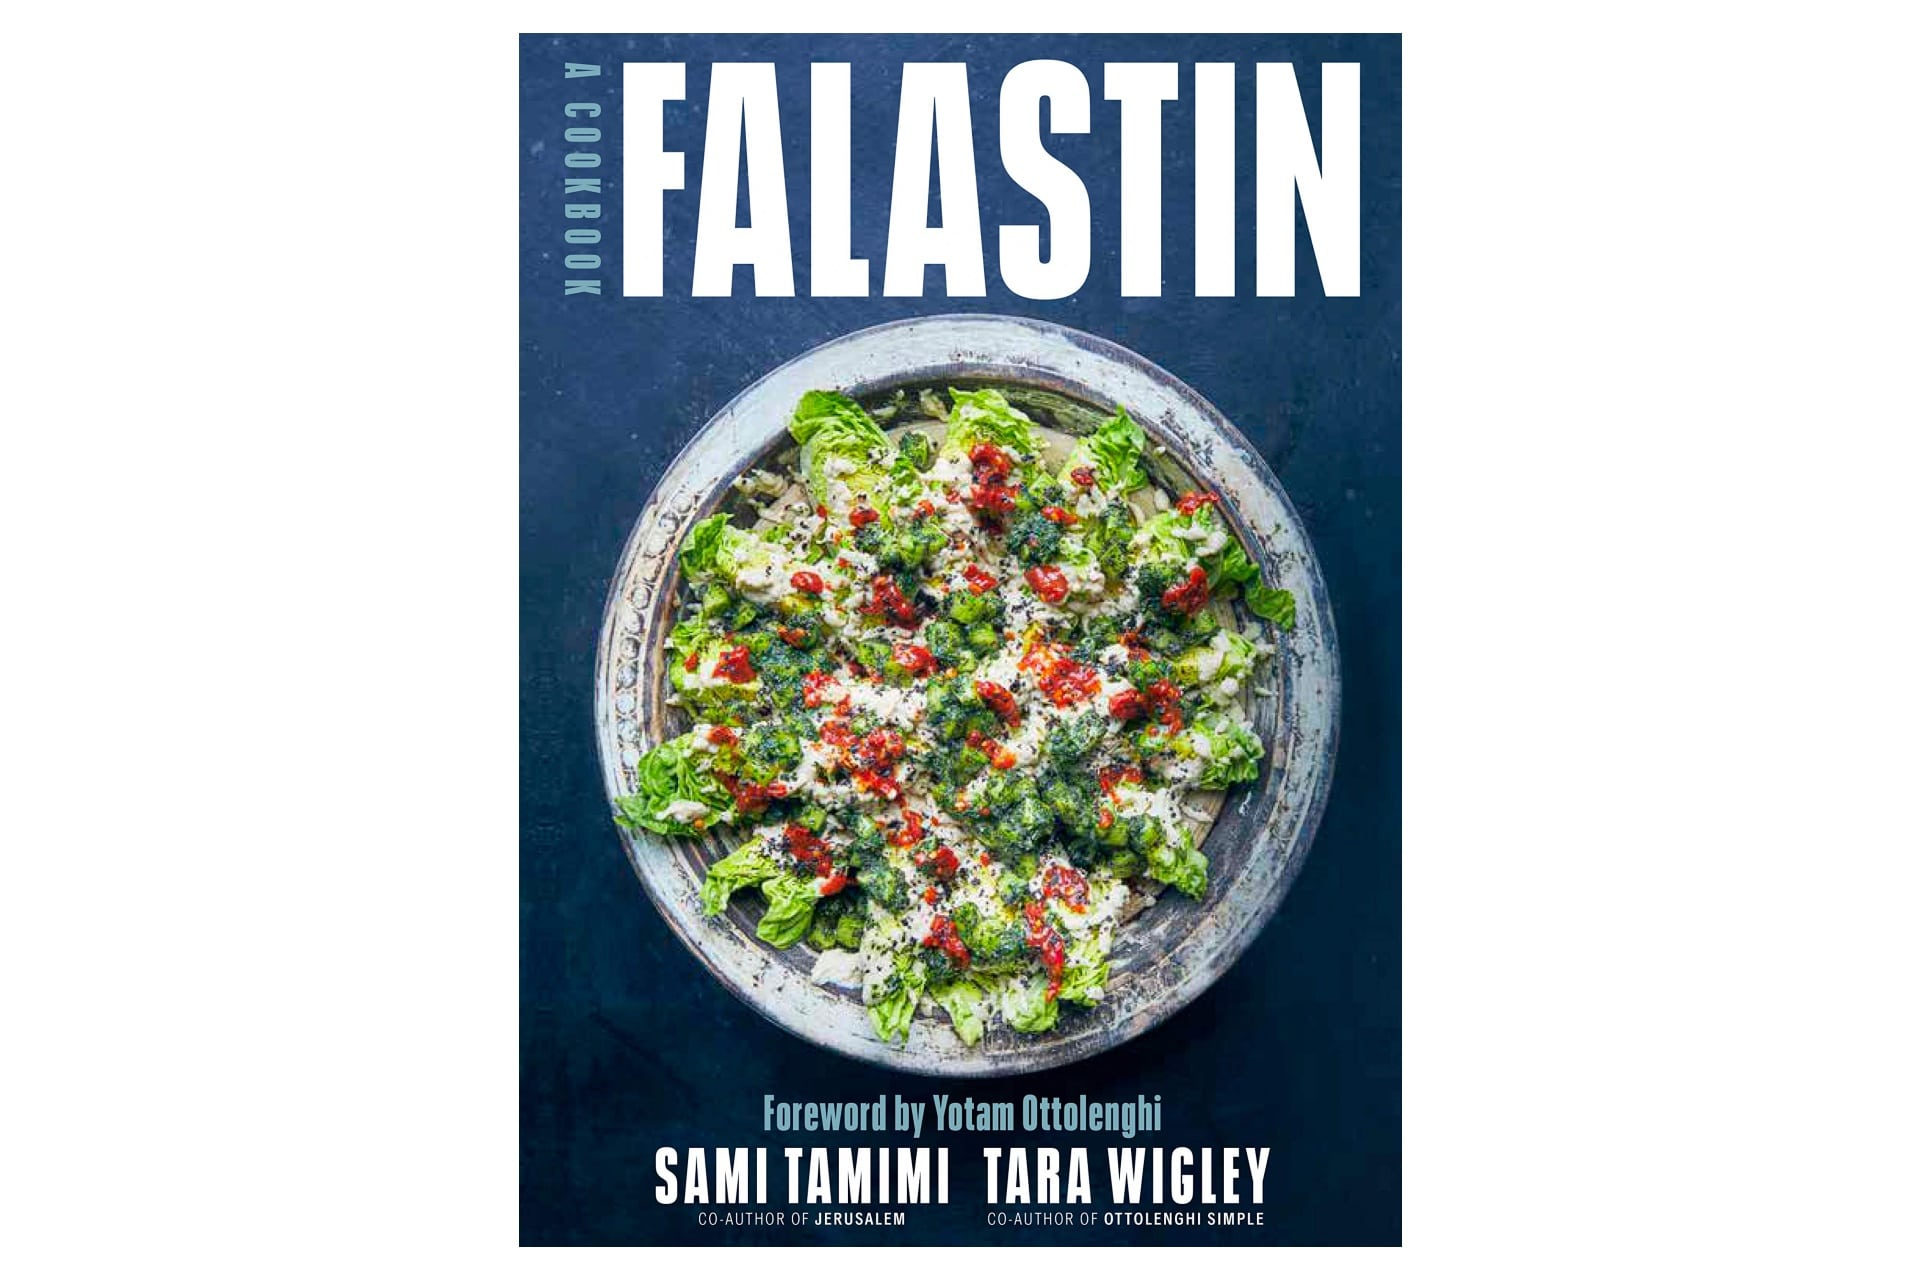 falastin cookbook with bright salad on the cover